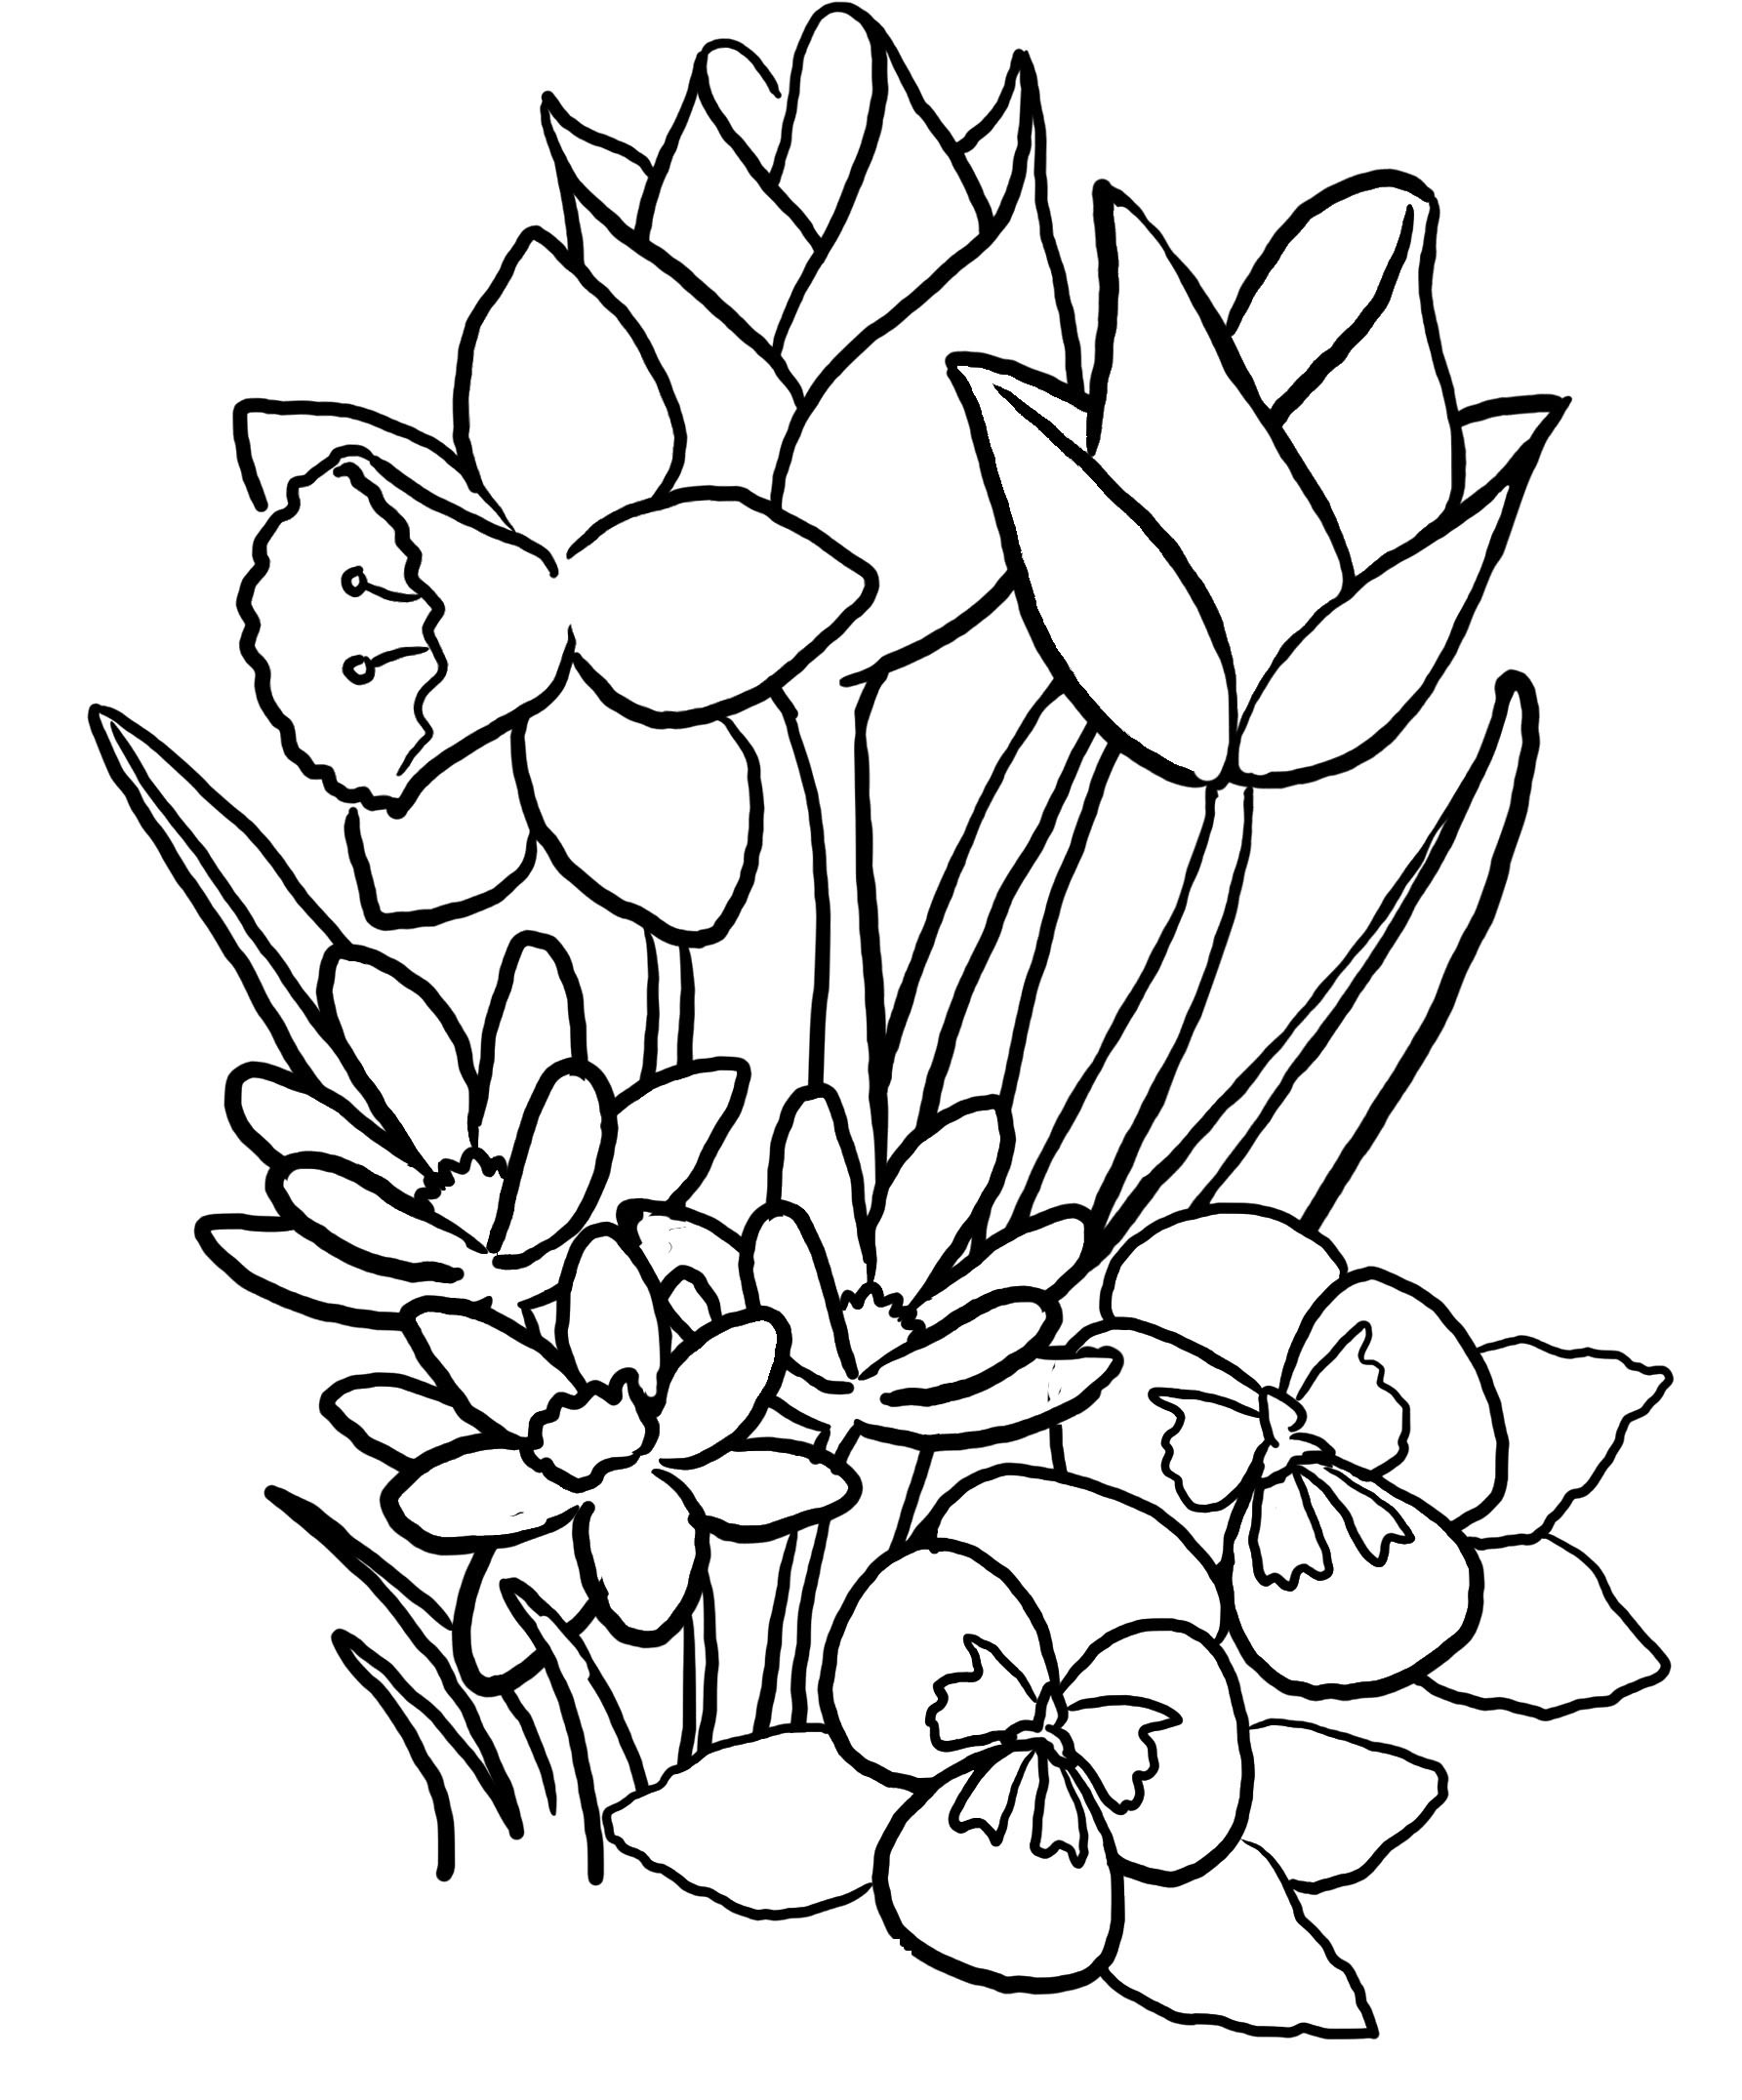 rose for coloring rose coloring pages download and print rose coloring pages rose coloring for